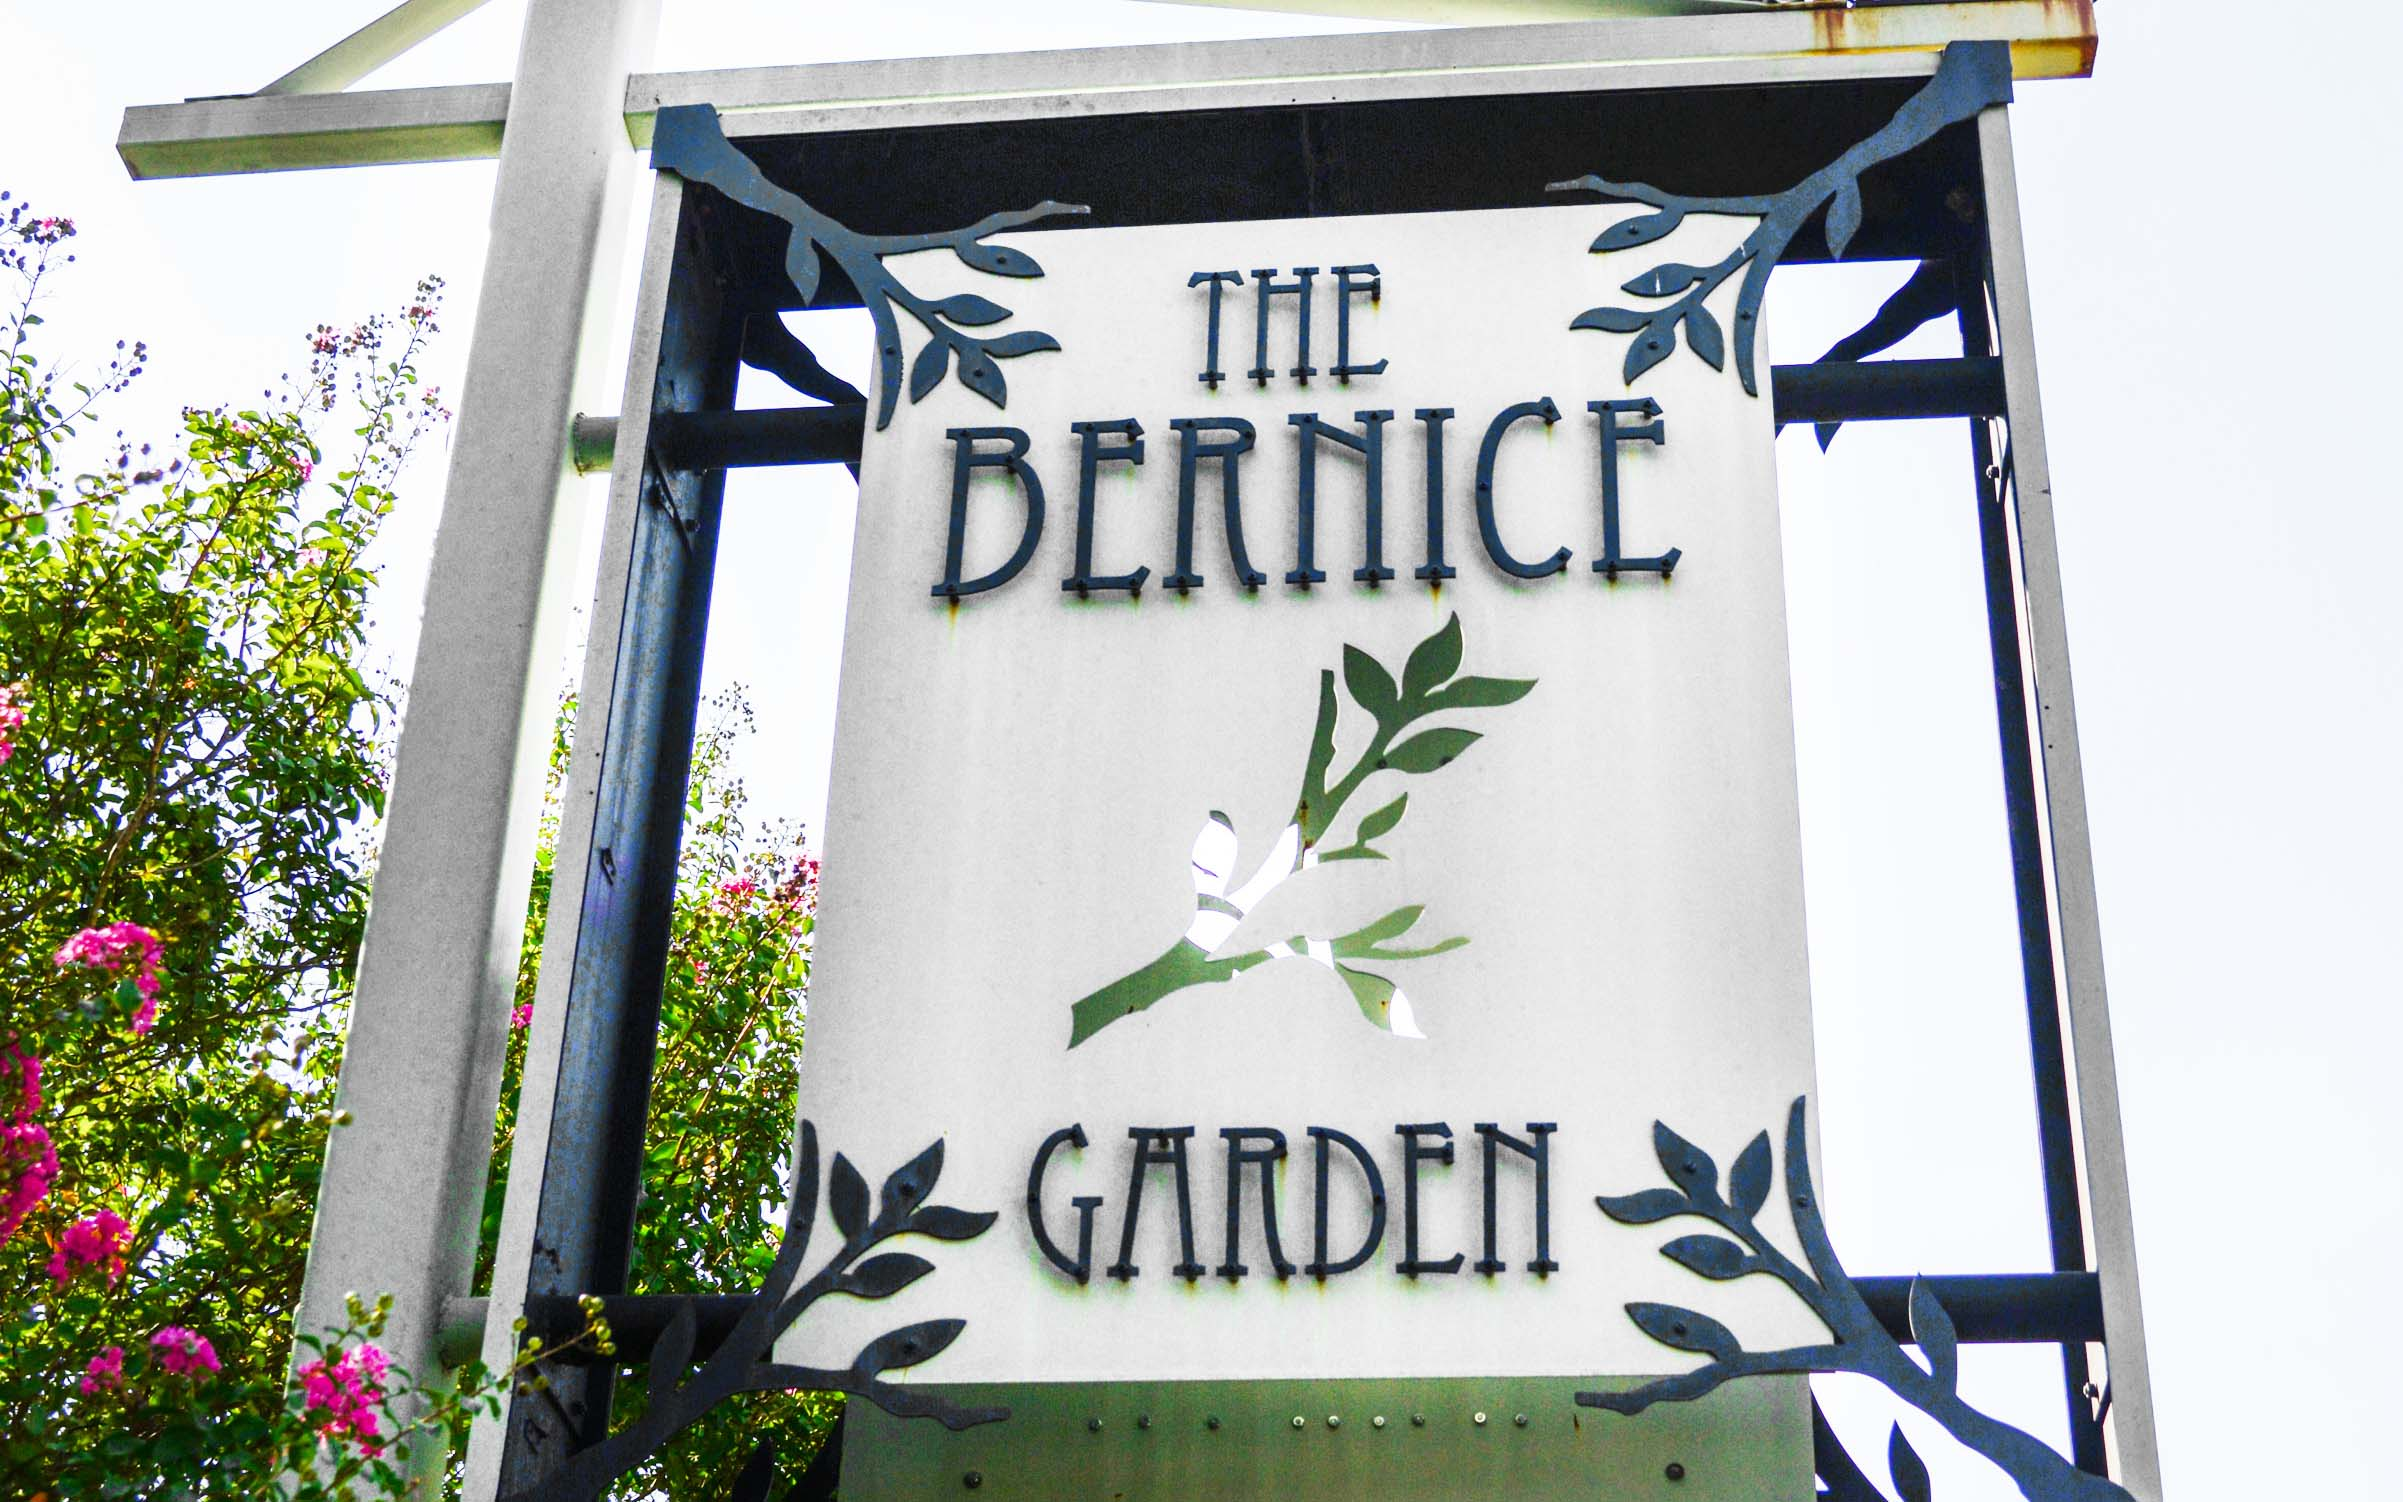 Vintage and Craft Market at the Bernice Garden